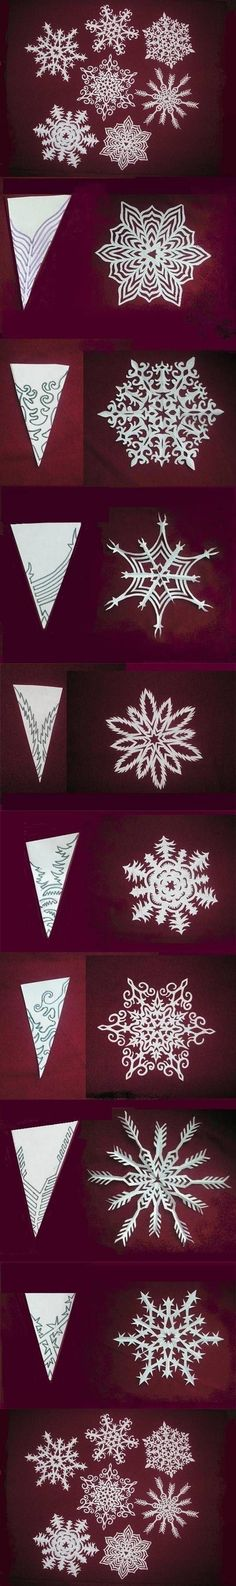 DIY Snowflakes Paper Pattern Tutorial via http://usefuldiy.com                                                                                                                                                     More